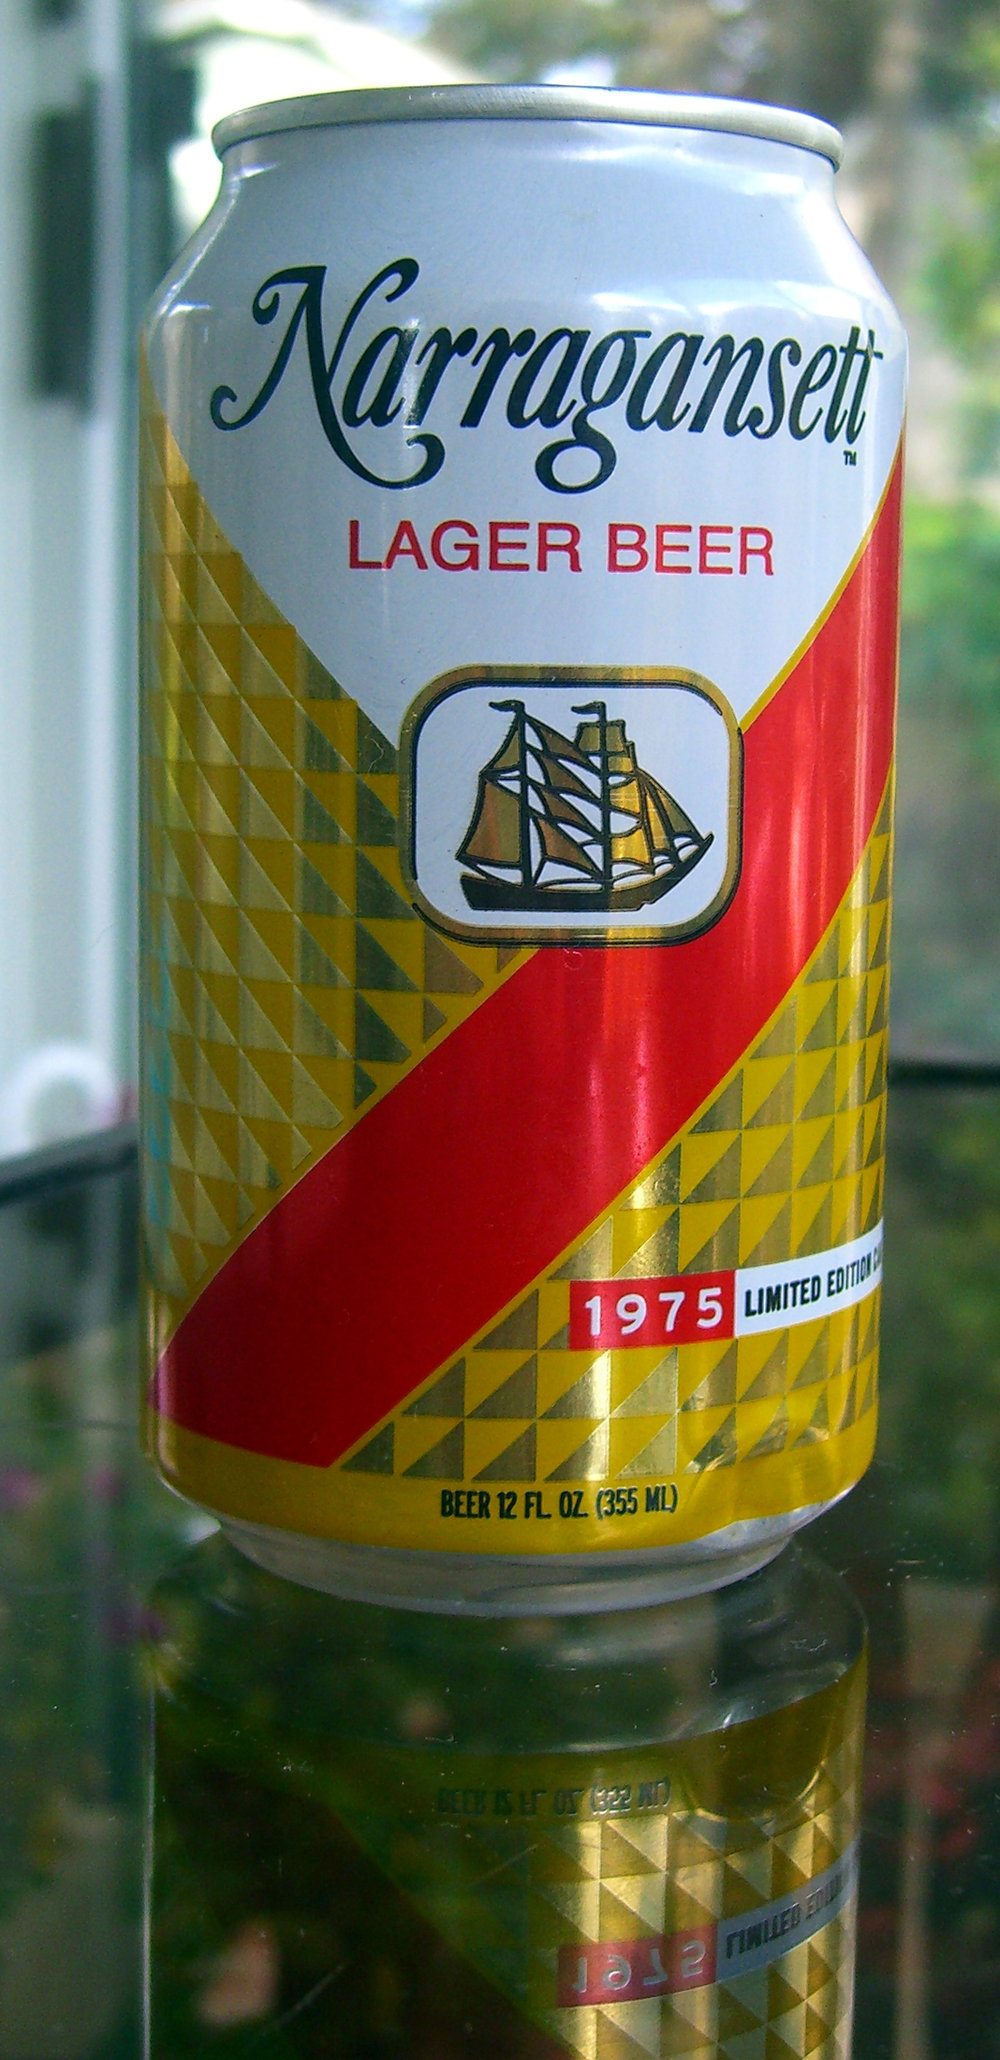 The final beer this week was Narragansett, a New England-brewed lager. The barley malt is noticeable in the aroma, which is a welcome change from some of the previous beers in this review. (walknboston/Flickr Creative Commons)